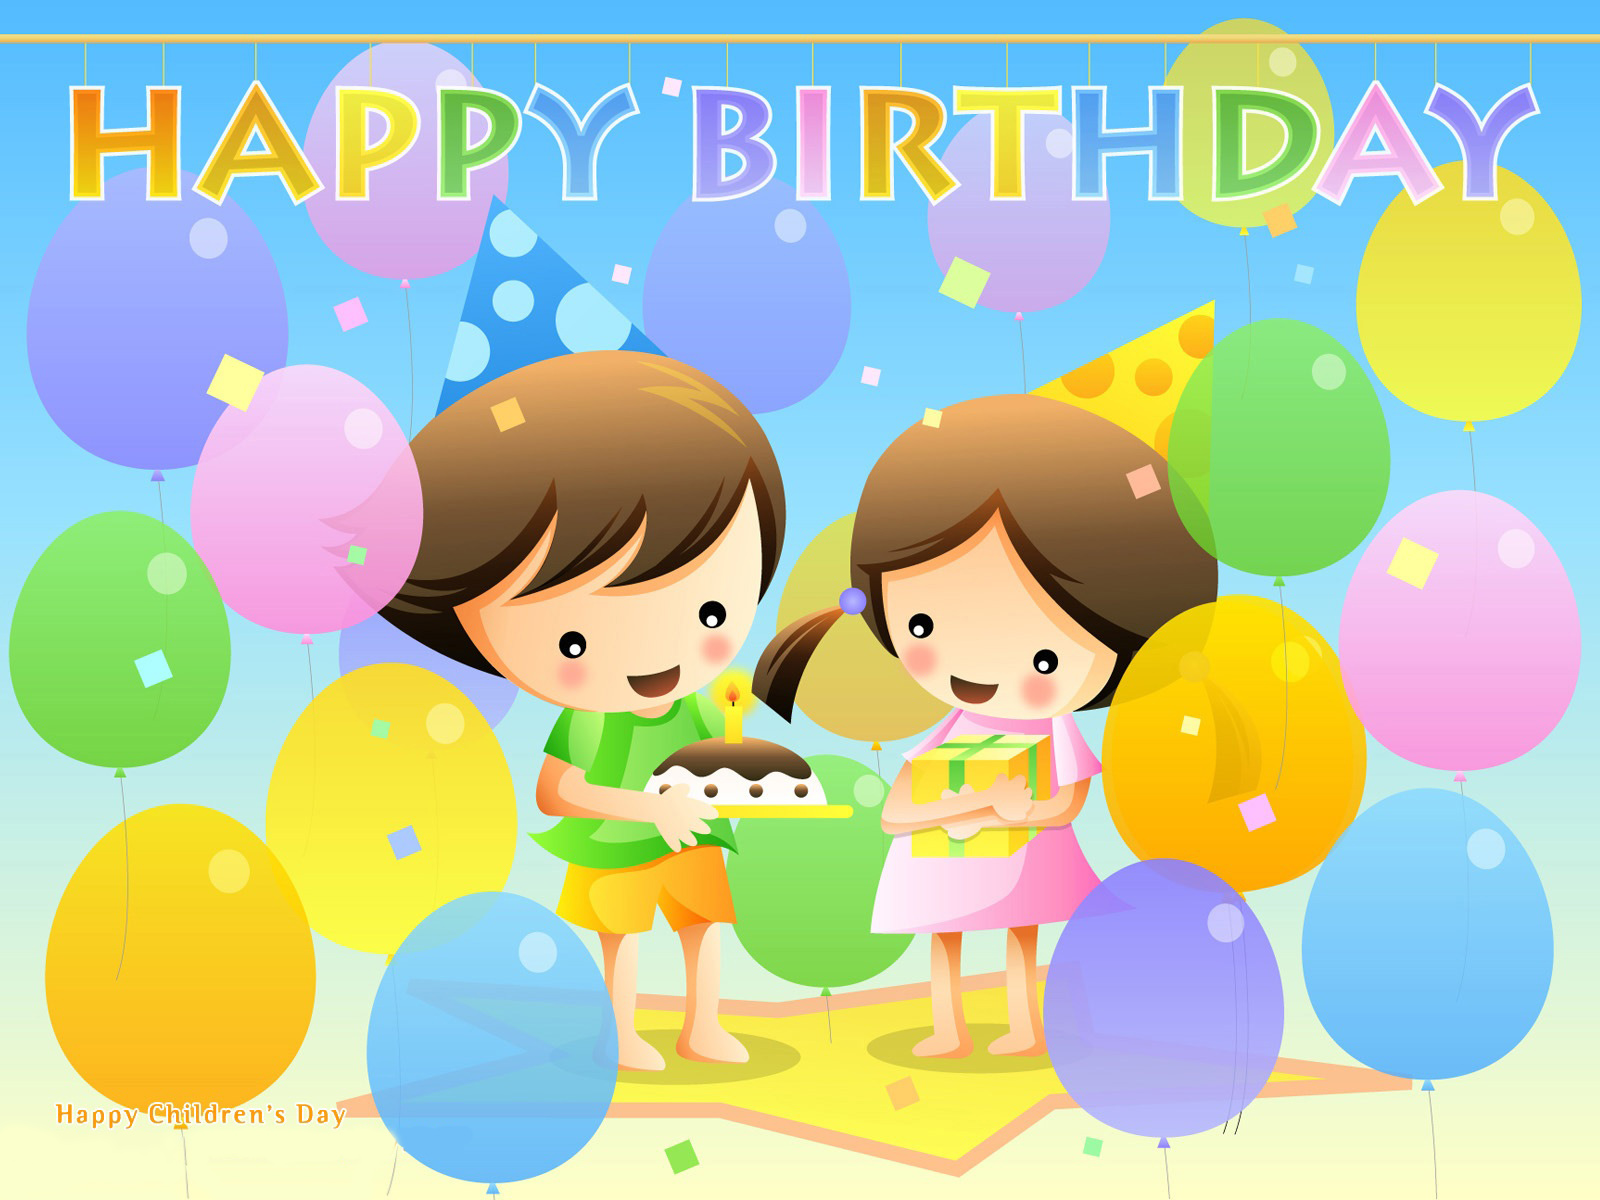 Wallpapers for Birthday  HD Wallpapers Pulse  FUNZIEZ 1600x1200